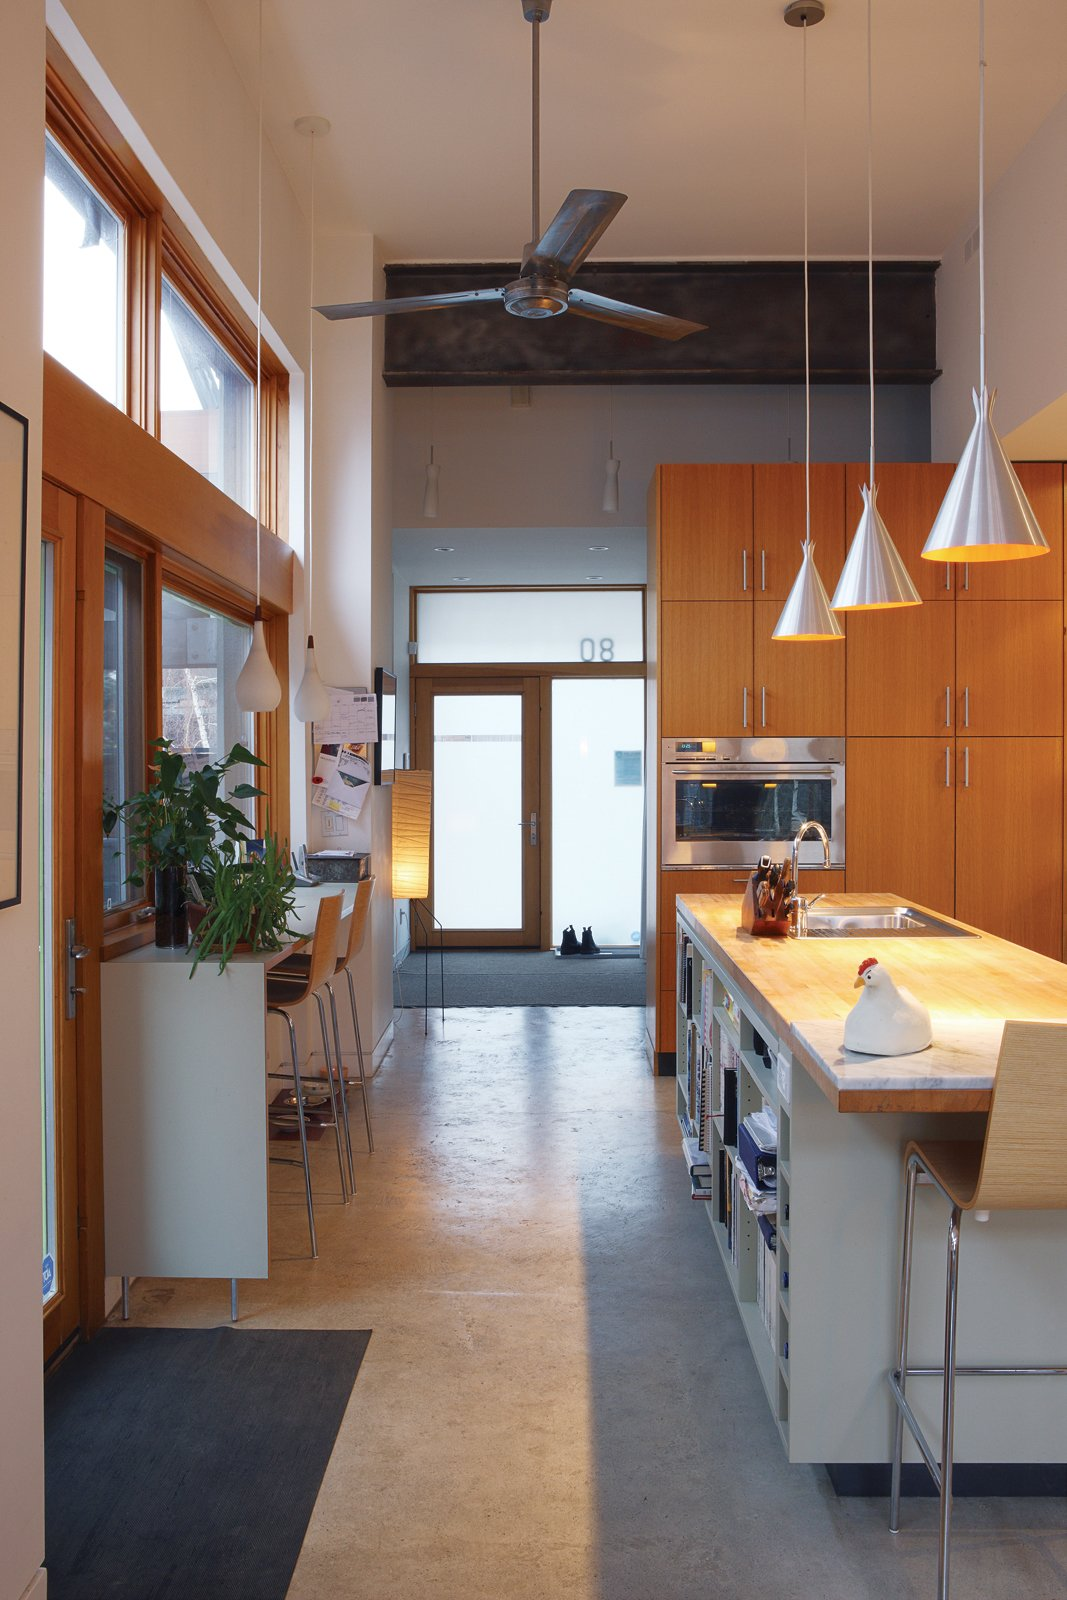 The kitchen, which gets light from three sides, welcomes guests into the house.